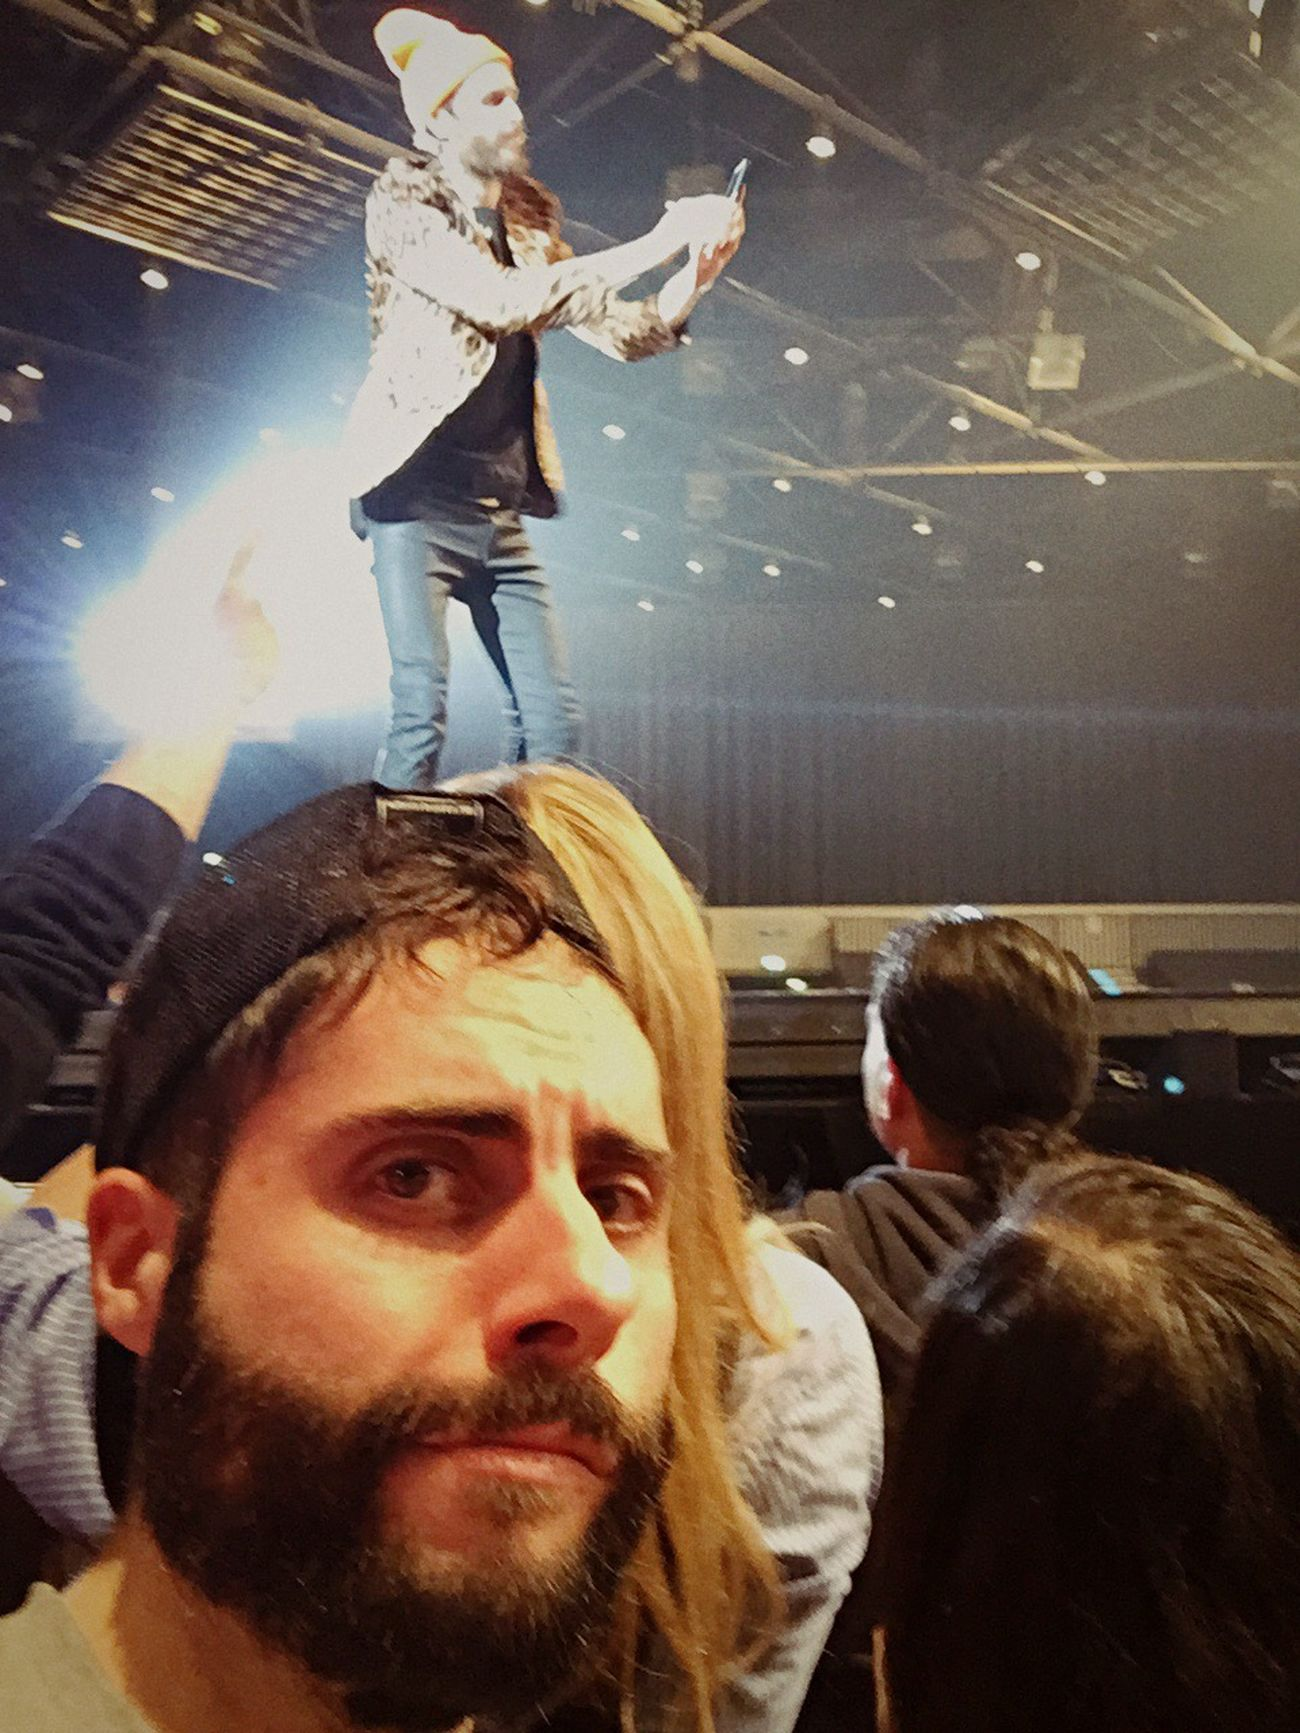 Selfie ✌ with Jovanotti taking a Selfie✌